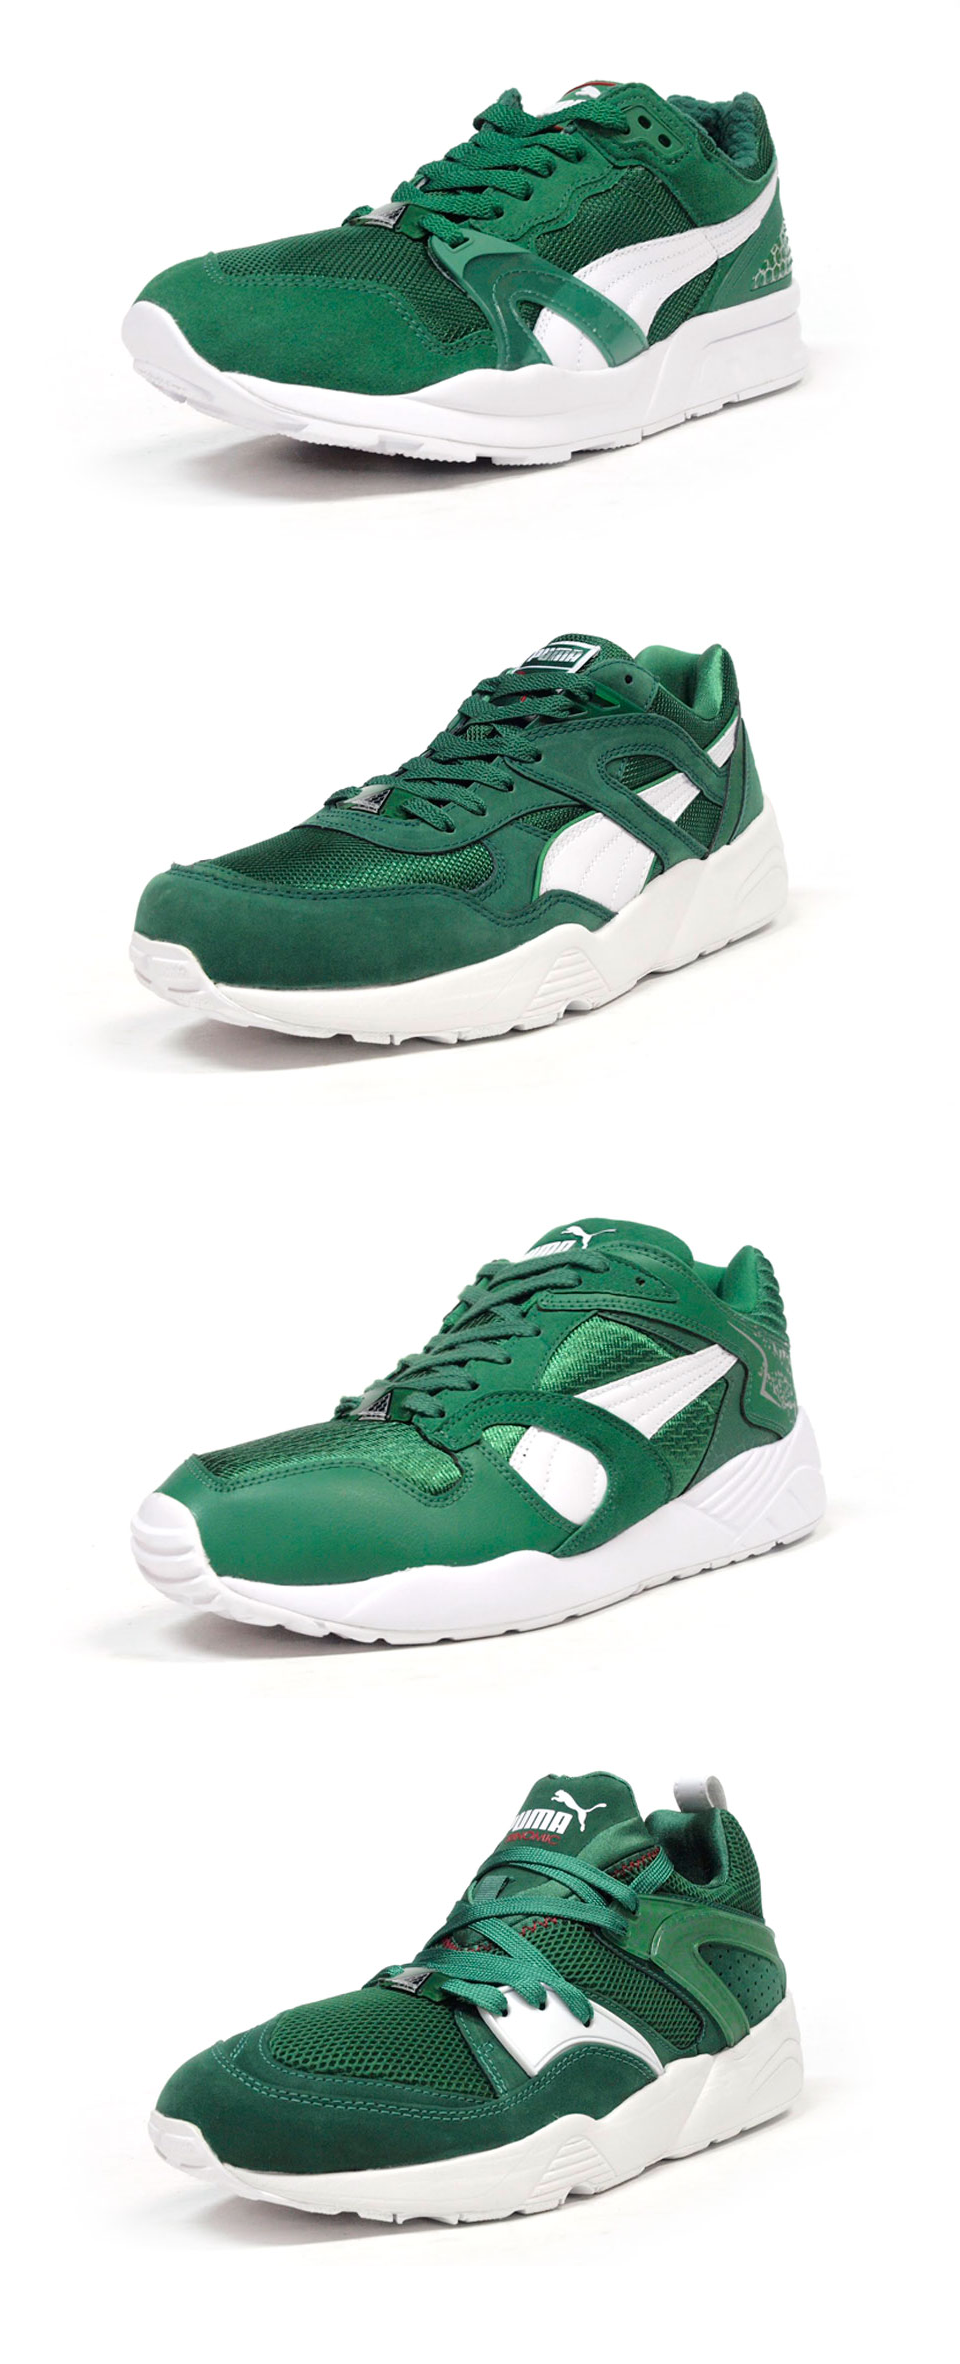 23c5c808d99973 Puma Green Box Pack (XT2+